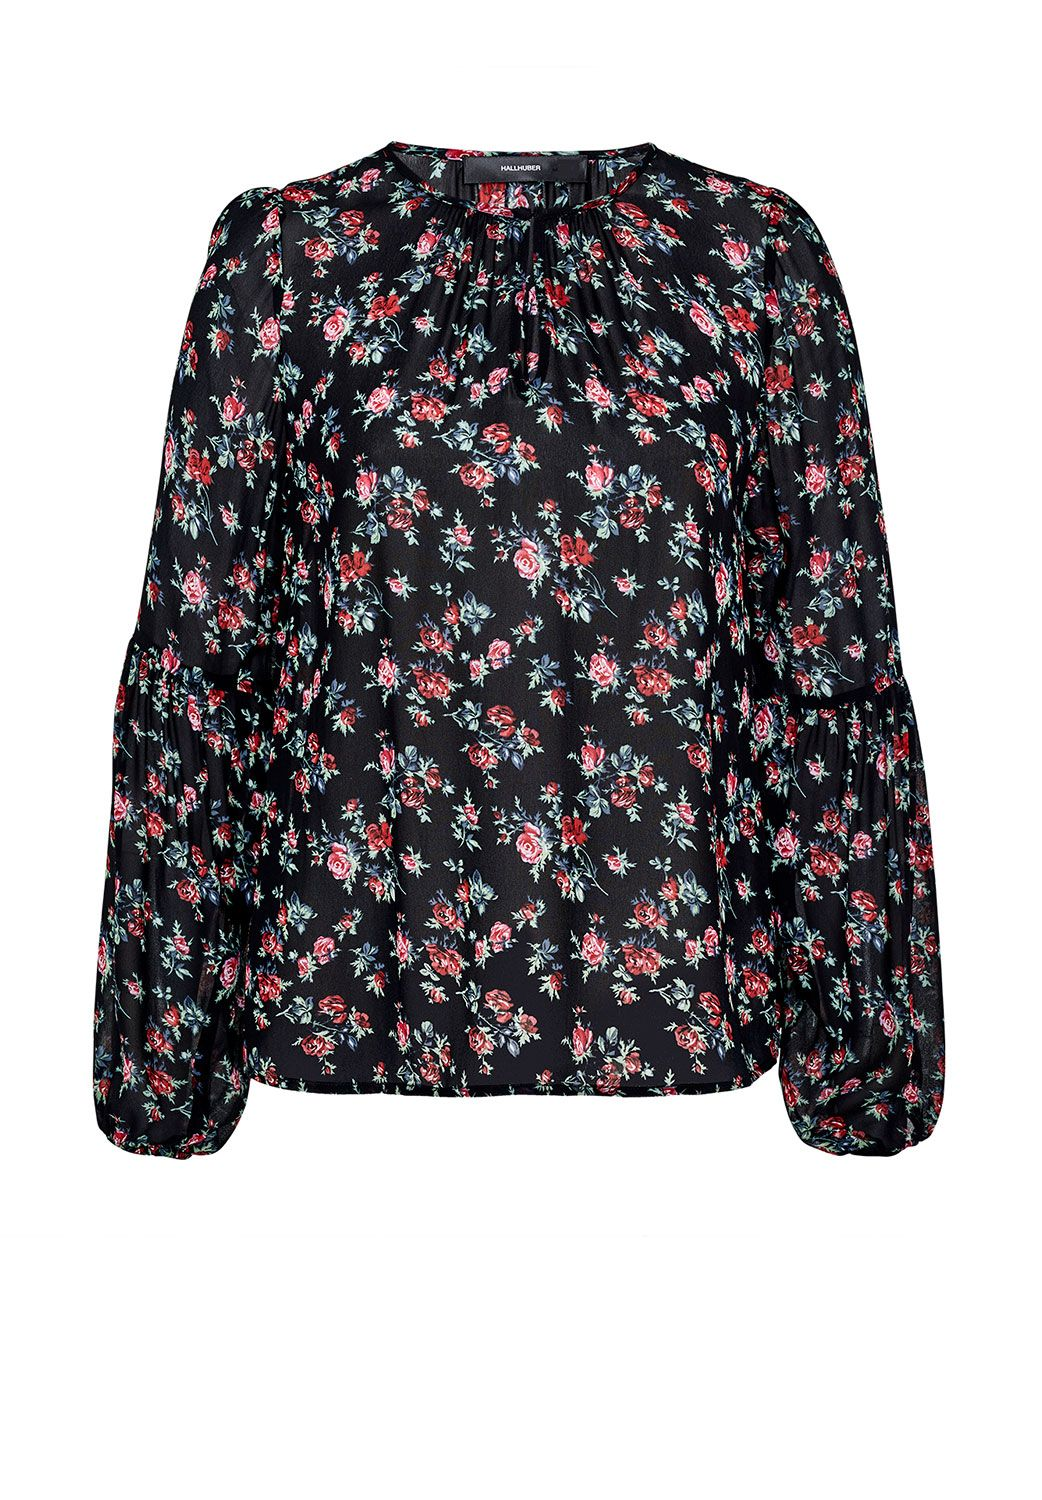 Hallhuber Rose print blouse with balloon sleeves, Multi-Coloured